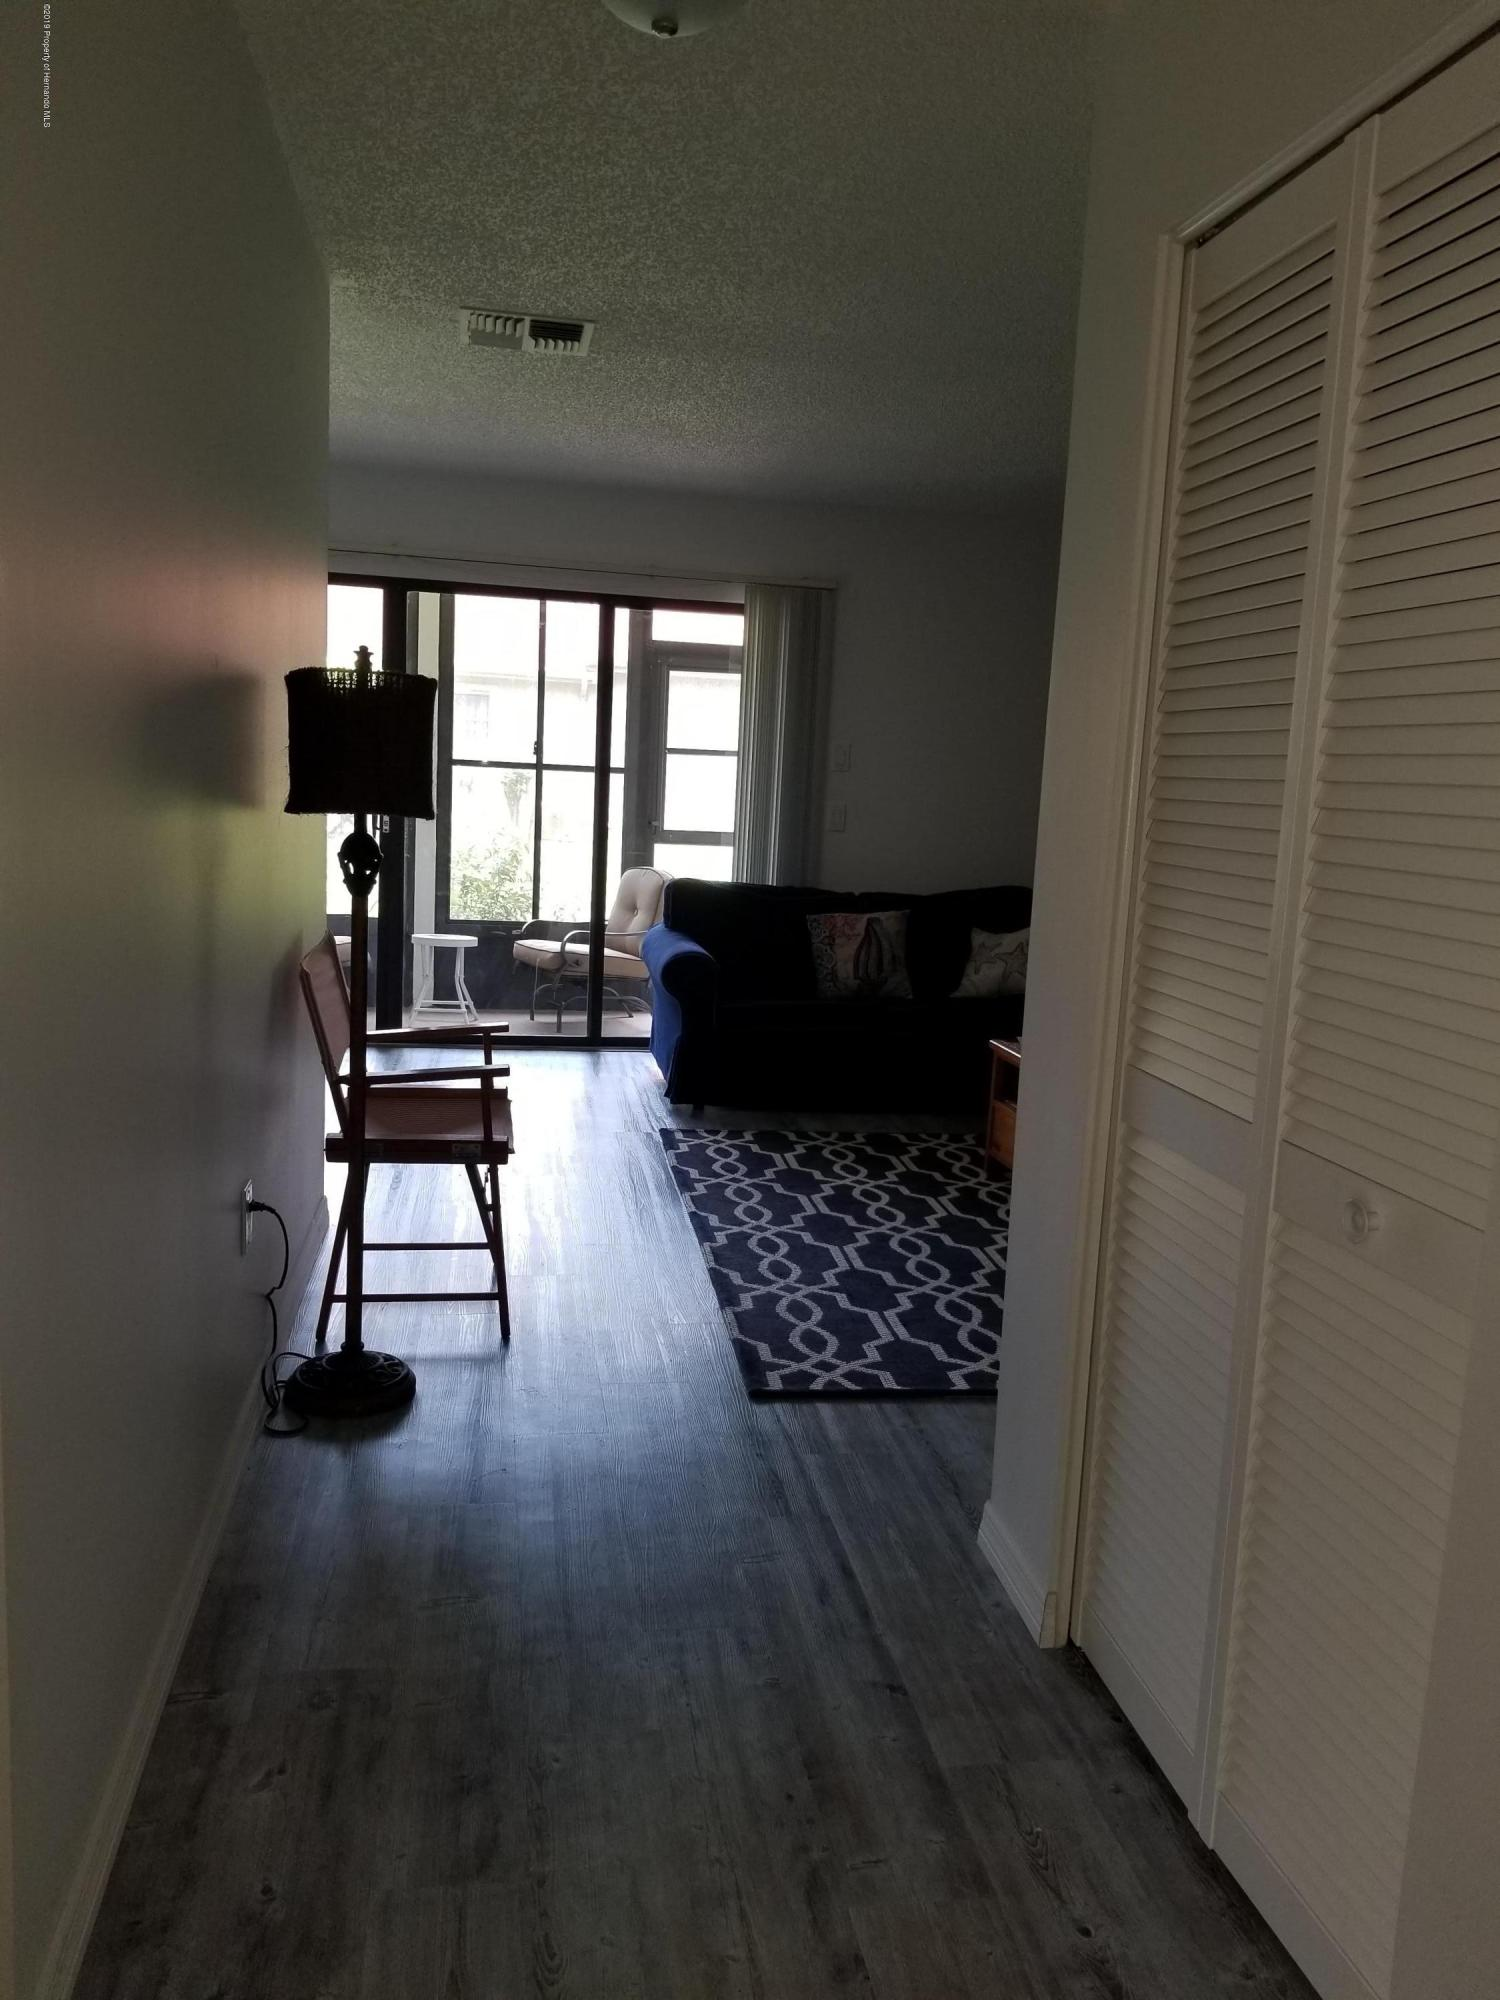 2187 Forester Way, Spring Hill, Florida 34606, 1 Bedroom Bedrooms, ,1 BathroomBathrooms,Rental,For Sale,Forester,2206071